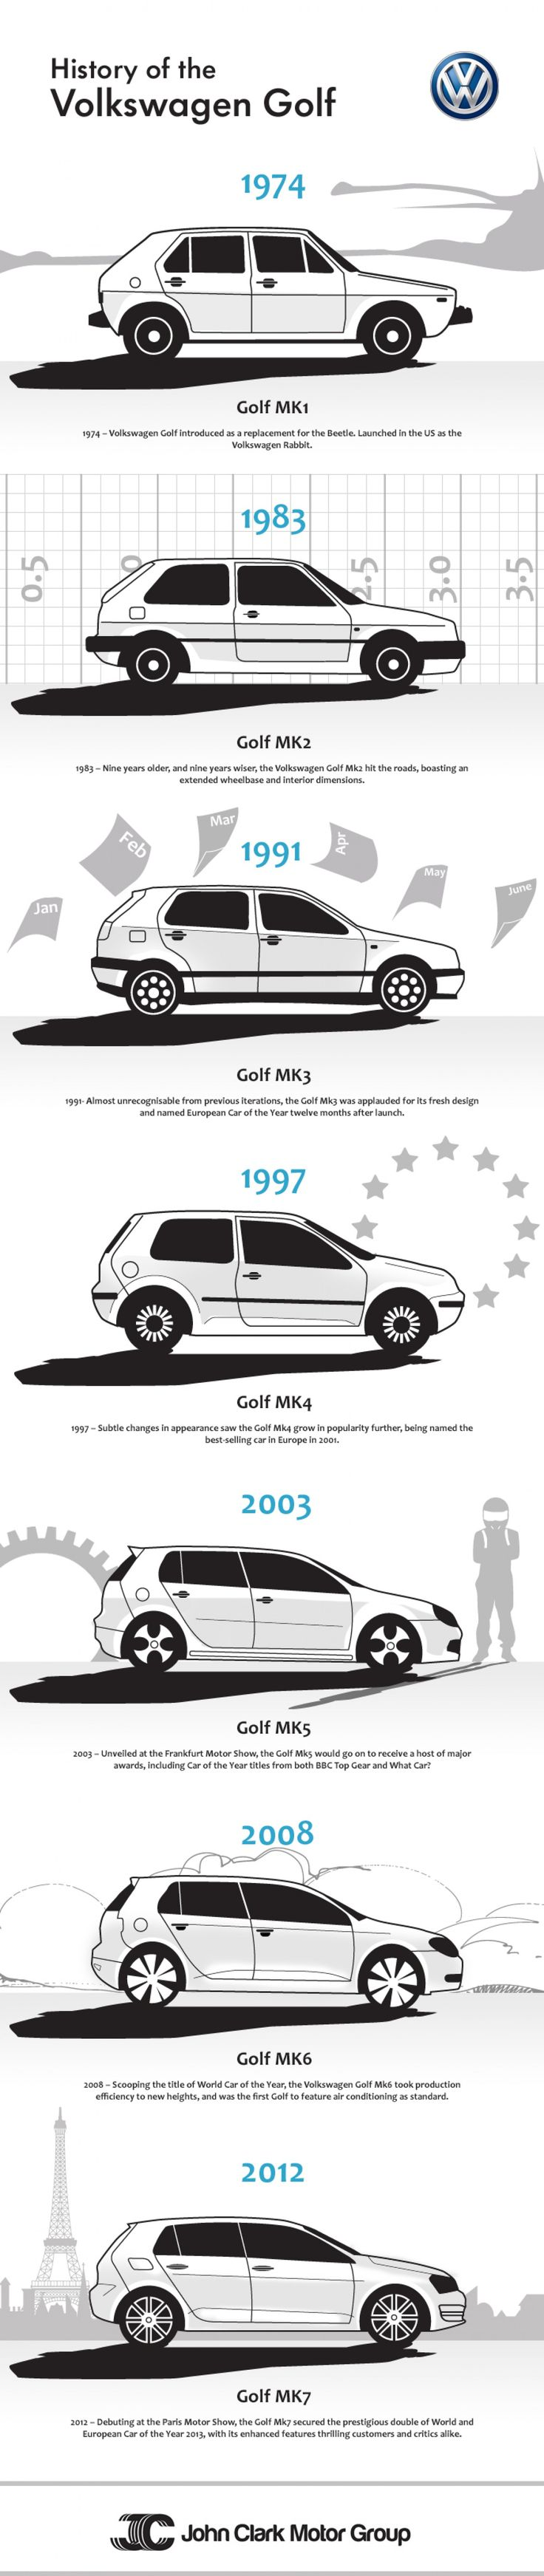 The History of the Volkswagen Golf Infographic